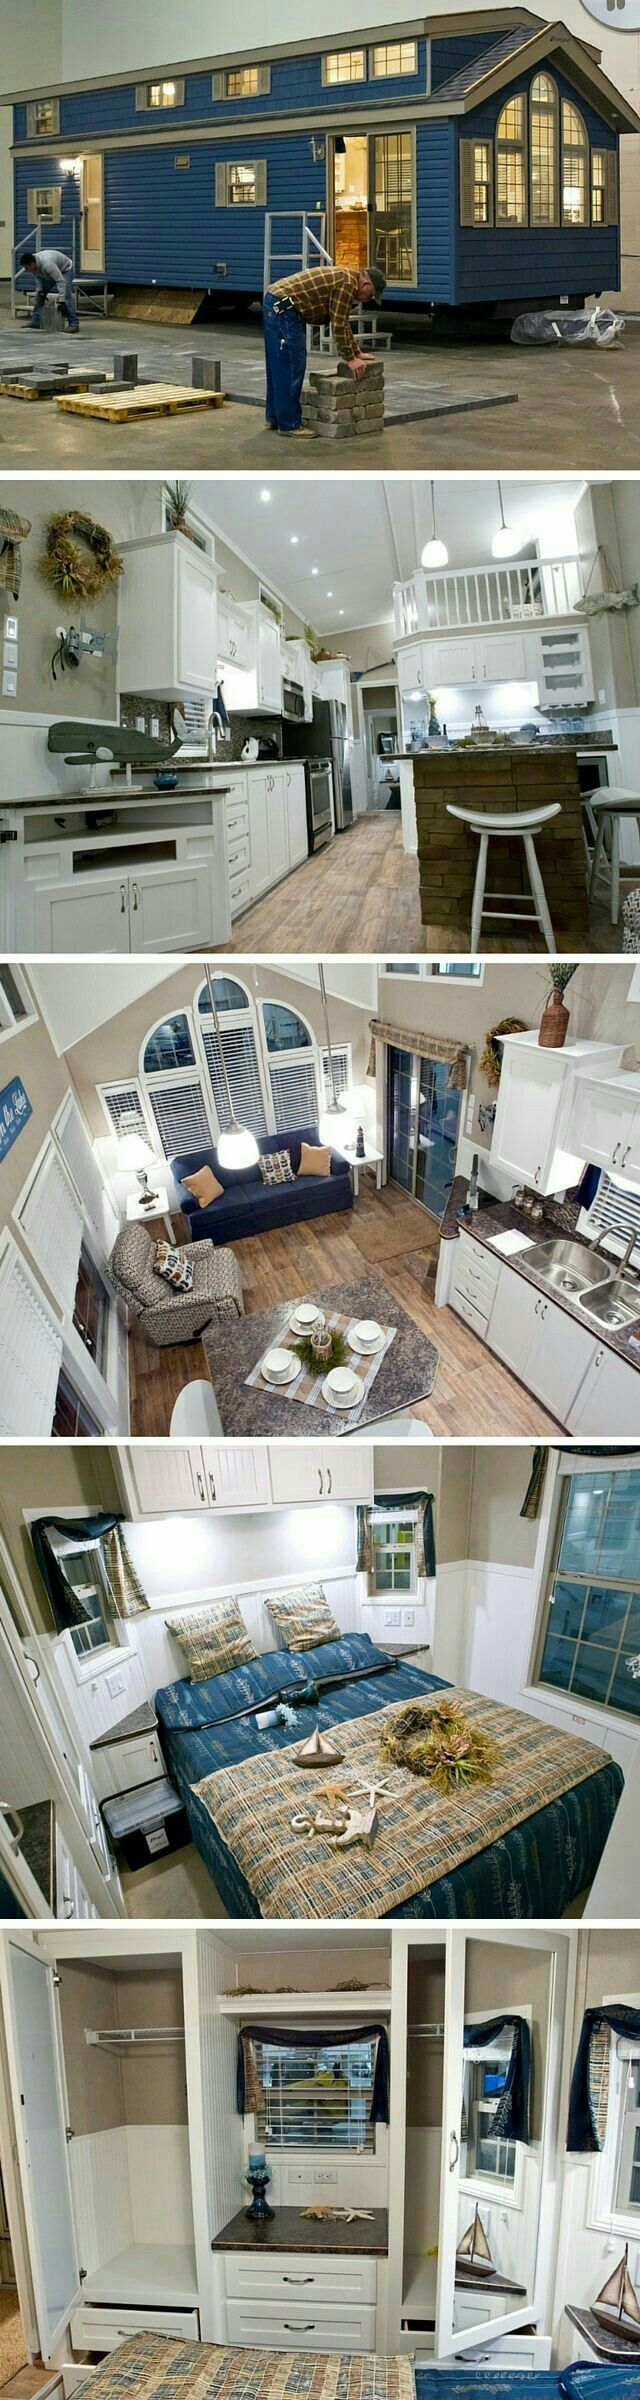 Find and save ideas about Living room color schemes on Pinterest. | See more ideas about Grey living room ideas color schemes, Colour schemes for living room and Bedroom color schemes, Interior color schemes, Livingroom color ideas and Lounge colour schemes.   #LivingRoomColorsScheme #LivingRoomDecor #LivingRoomIdeas #LivingRoomGoals #LivingRoomLayout #DiyHomeDecor #DiyRoomDecor